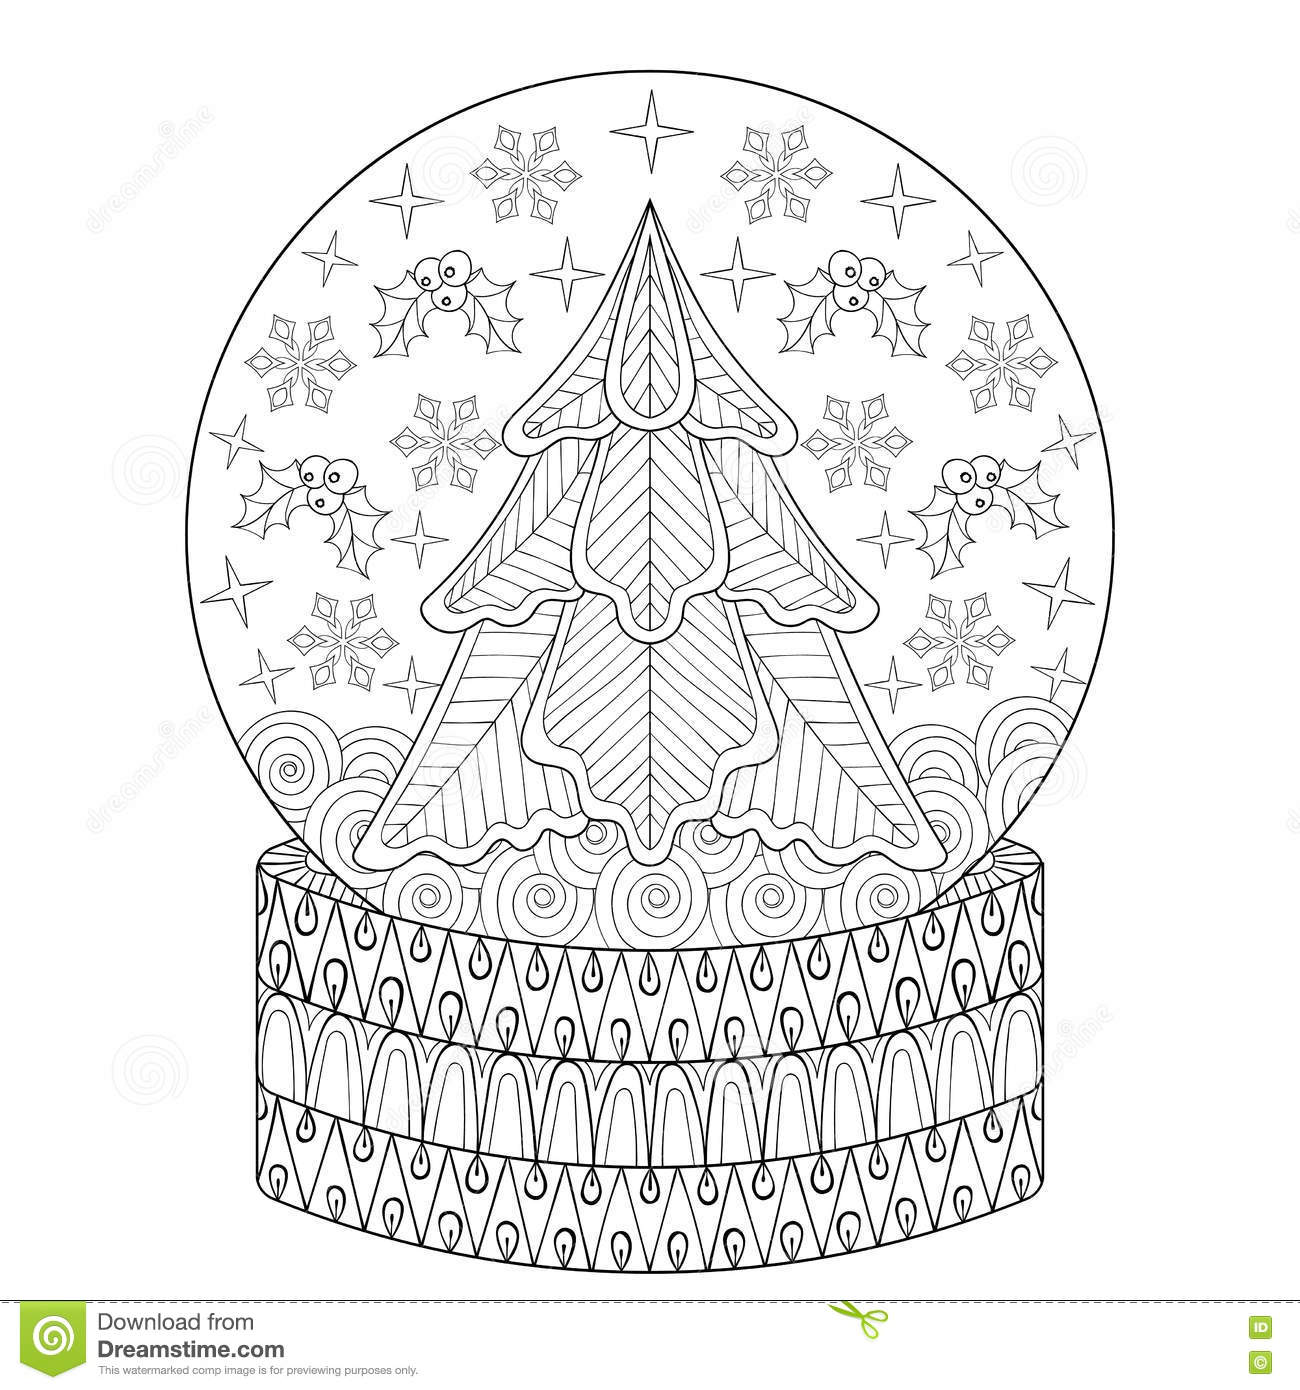 Winter Snow Globe Coloring Page coloring page & book for kids. | 1390x1300